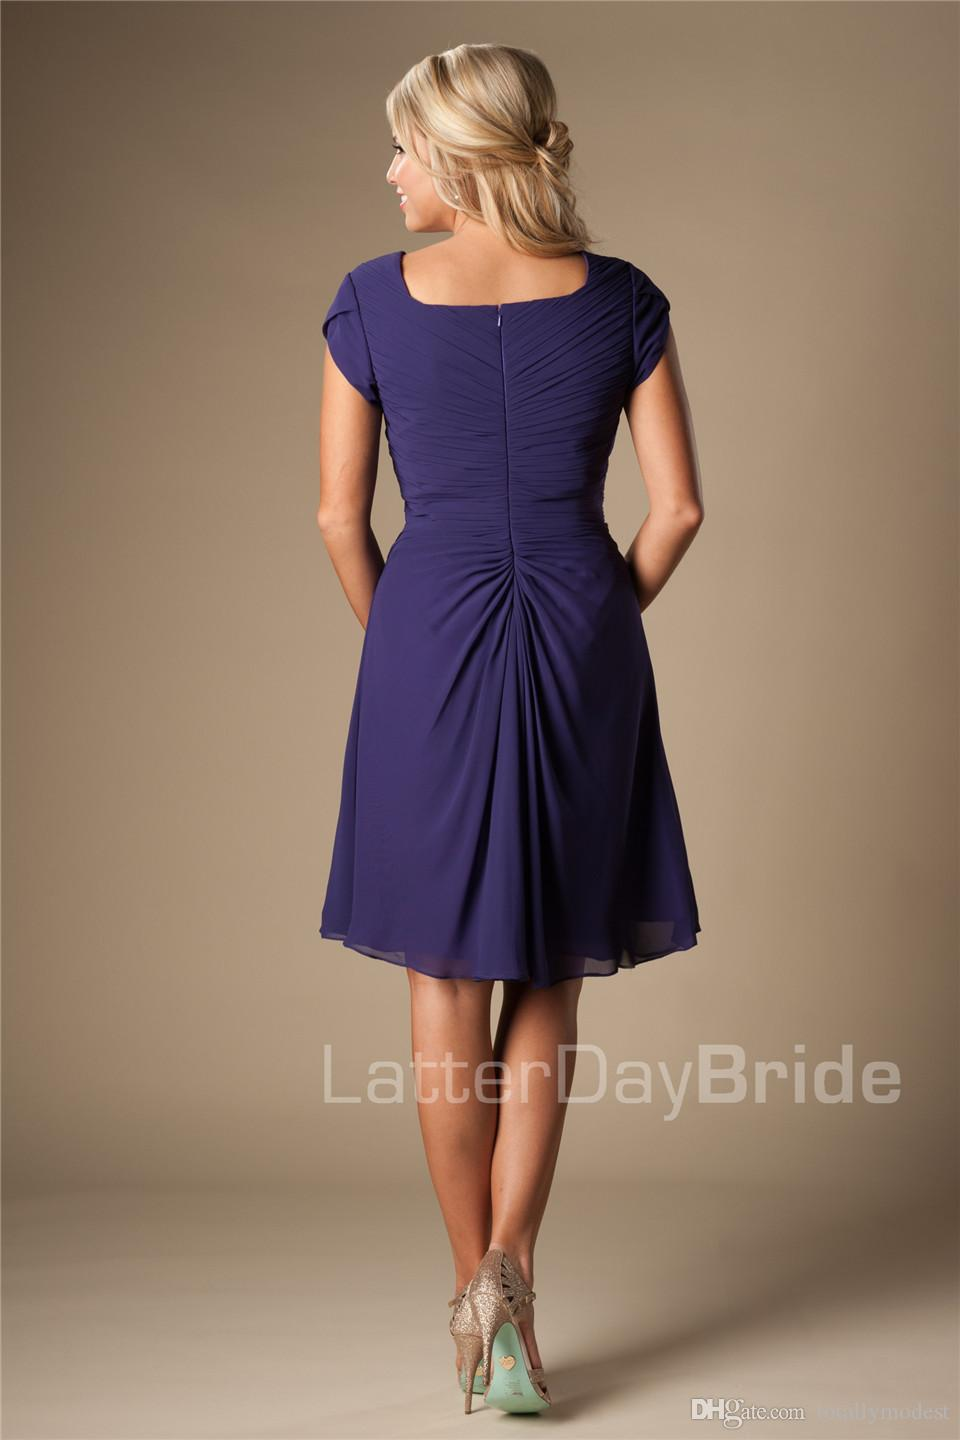 Purple Chiffon Beach Short Modest Bridesmaid Dresses With Short Sleeves A-line Ruched Maids of Honor Dresses Knee Length Wedding Party Dress